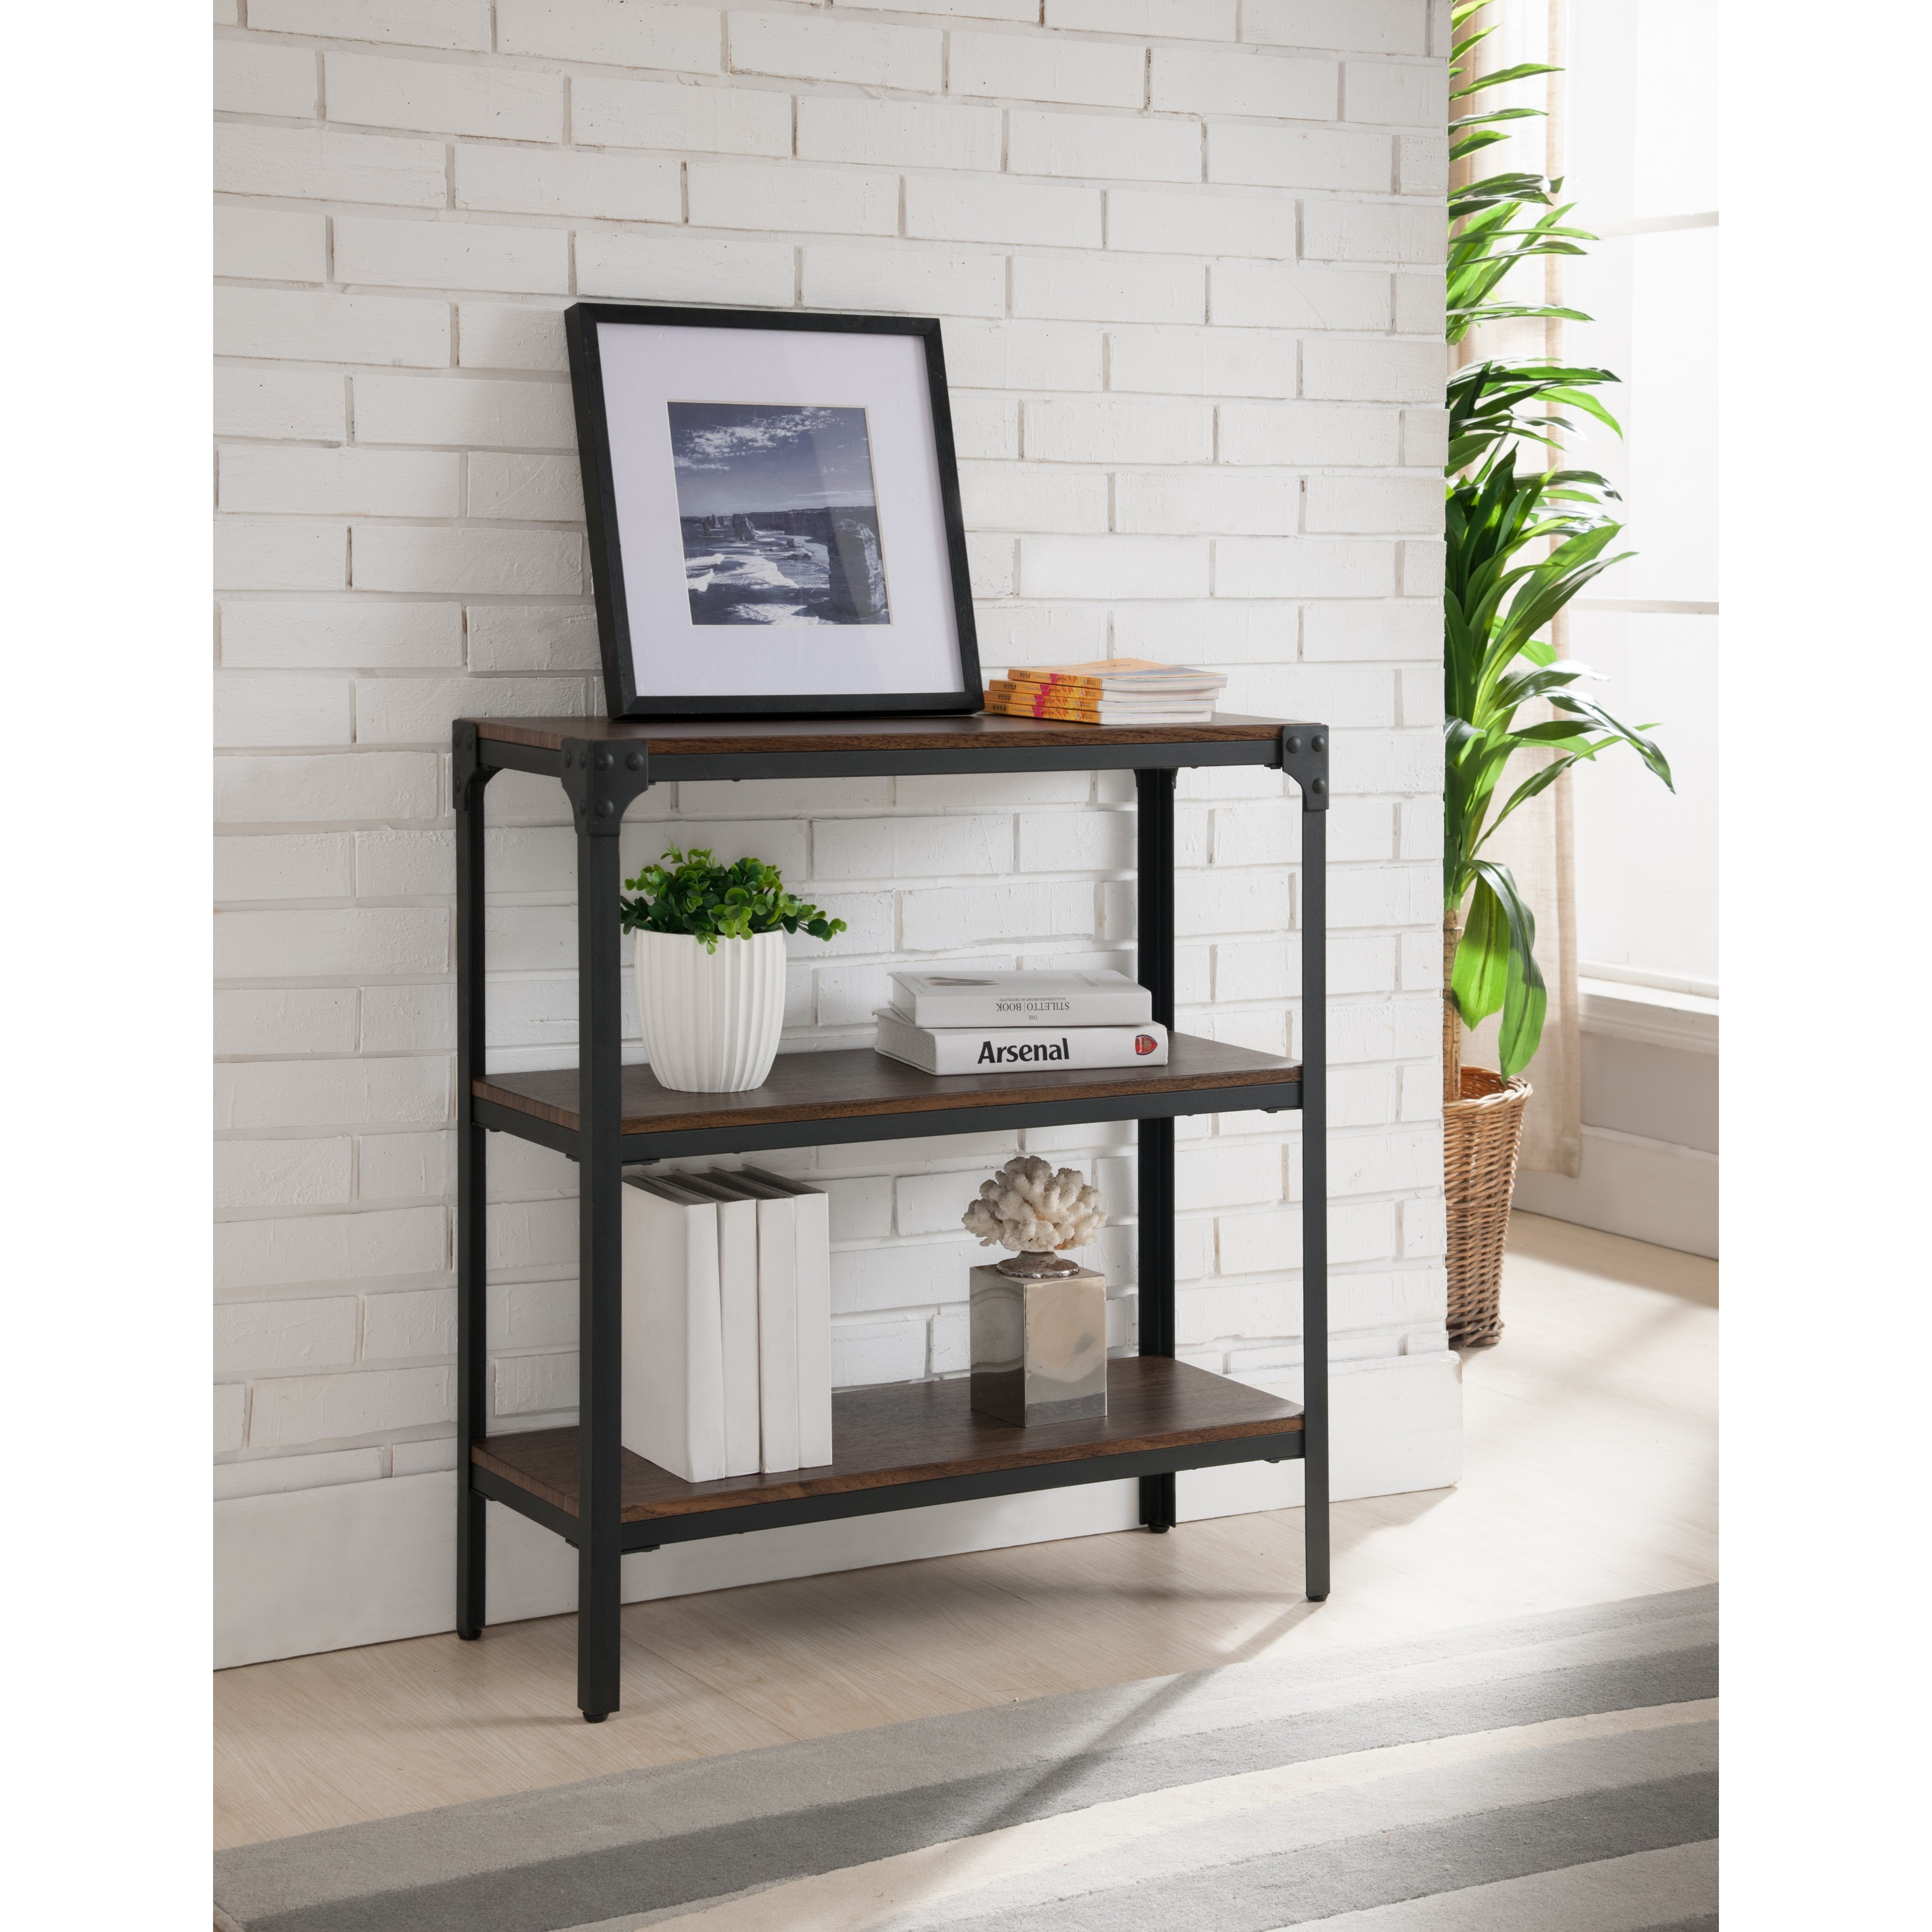 pine wood res inch shelf t metal media bookcases product etagere brown frame itm information bookcase ailis center